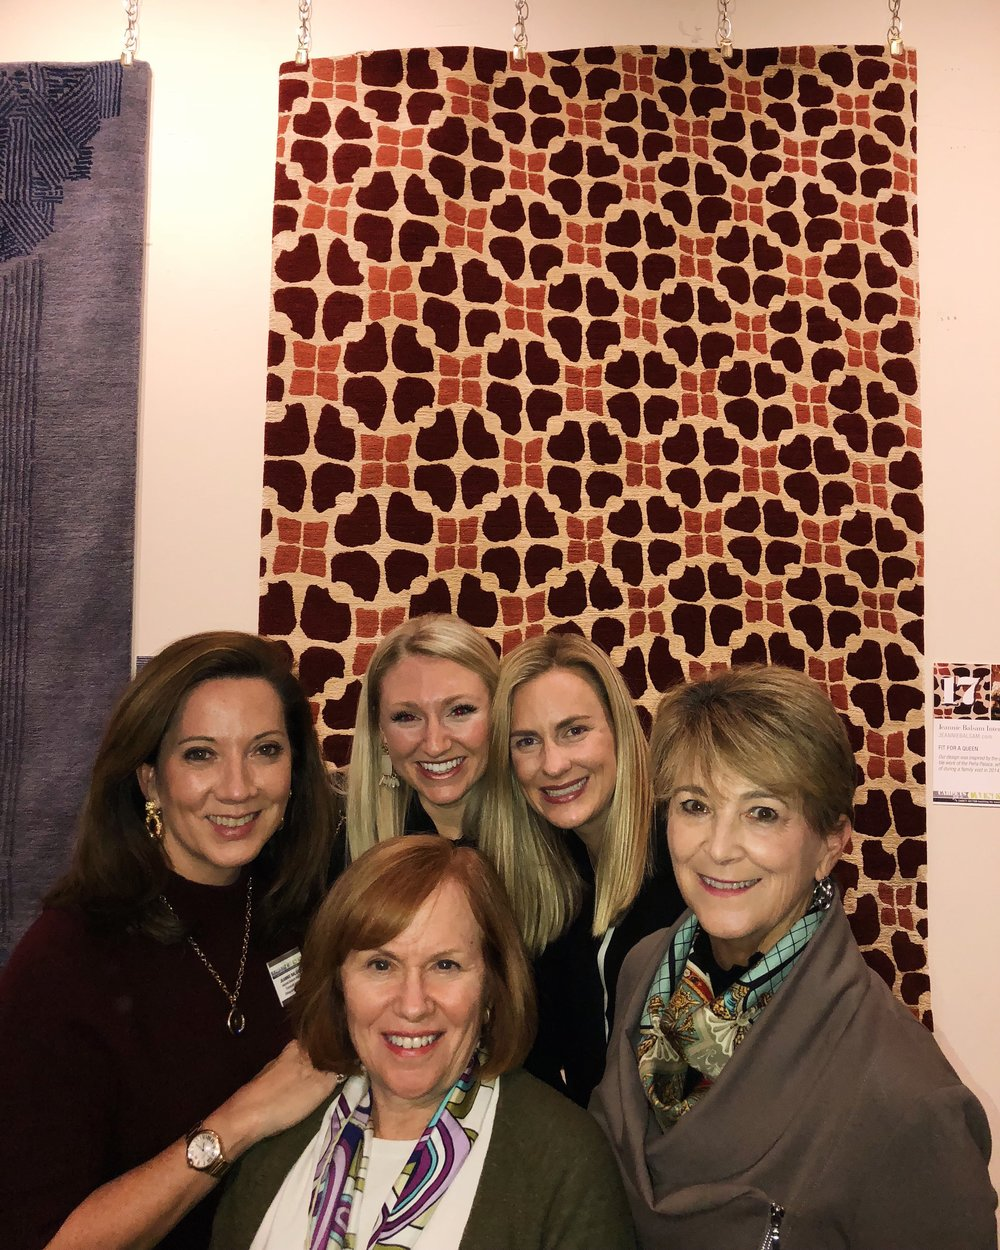 Our team having a blast at the Carpets for a Cause event at Oscar Isberian Rugs, in partnership with Designs4Dignity.  The rug we designed is featured behind us!